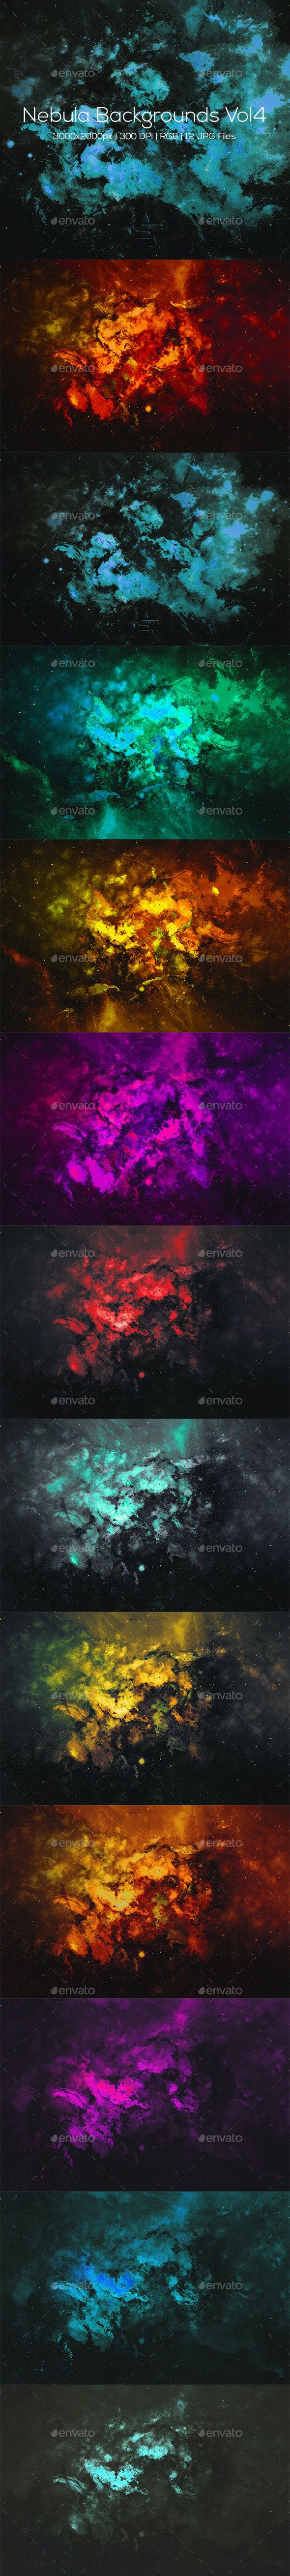 Nebula Backgrounds Vol4 - Abstract Backgrounds